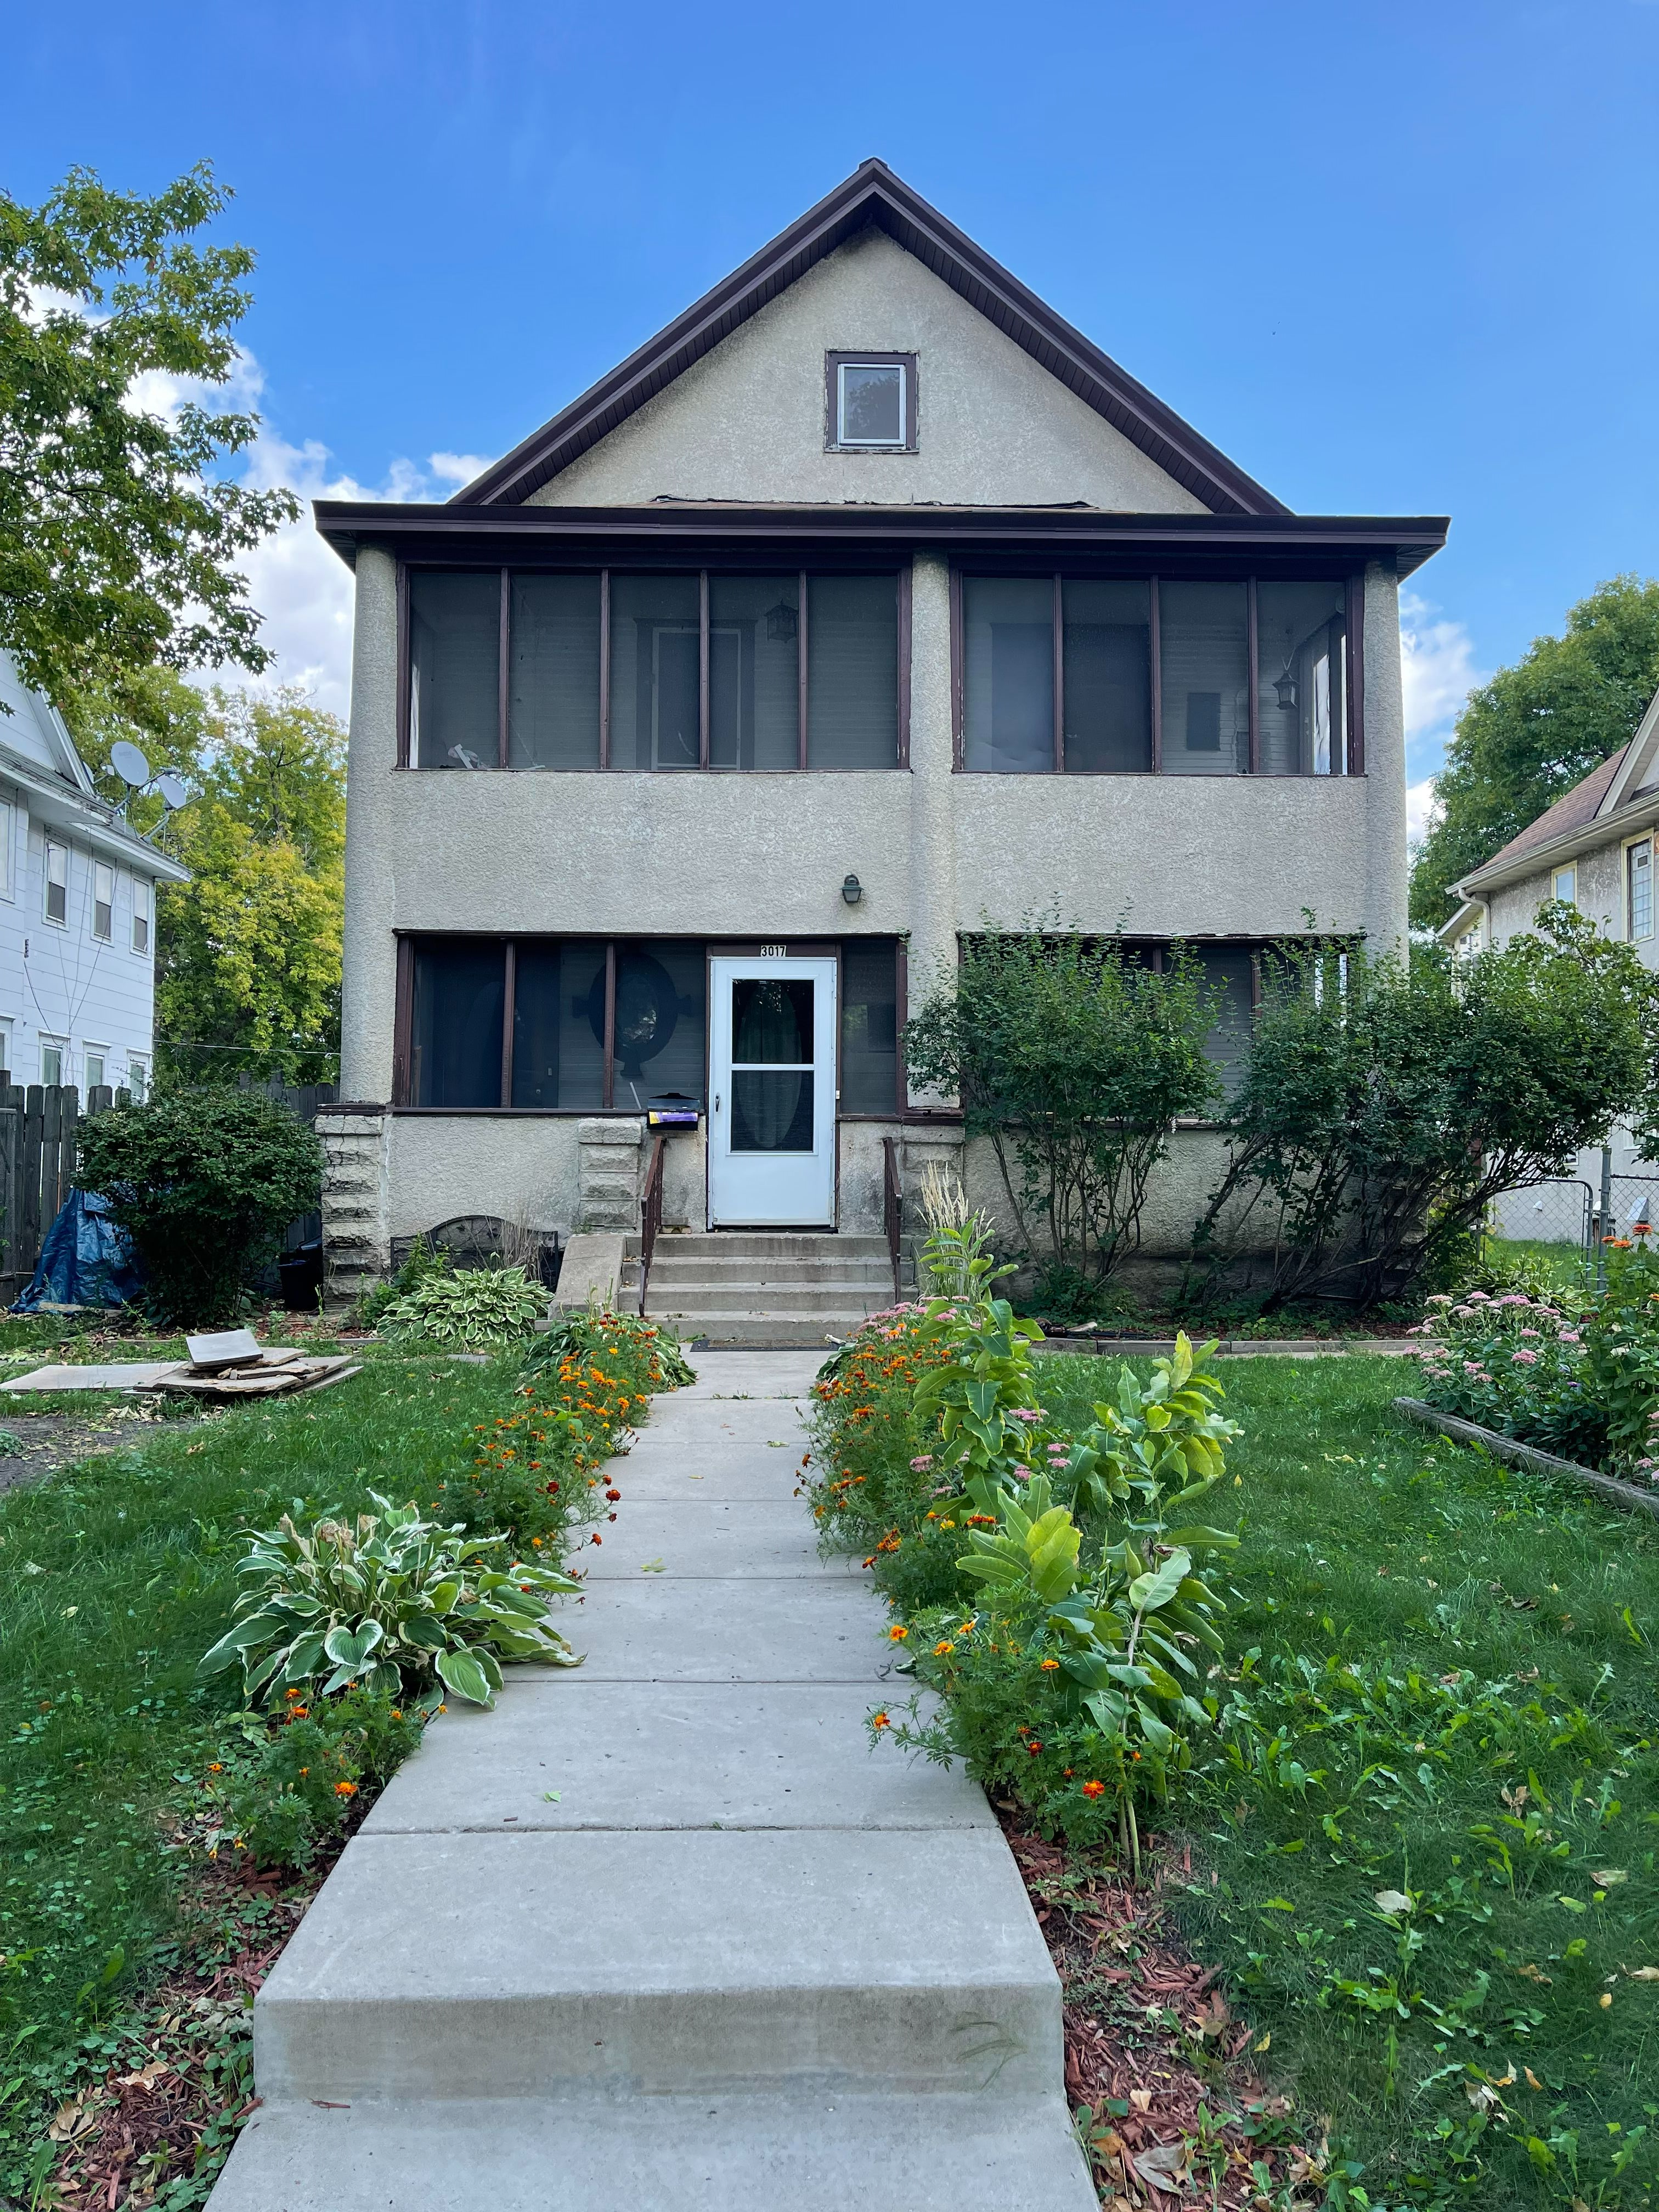 3017 29th Ave S (Image - 1)